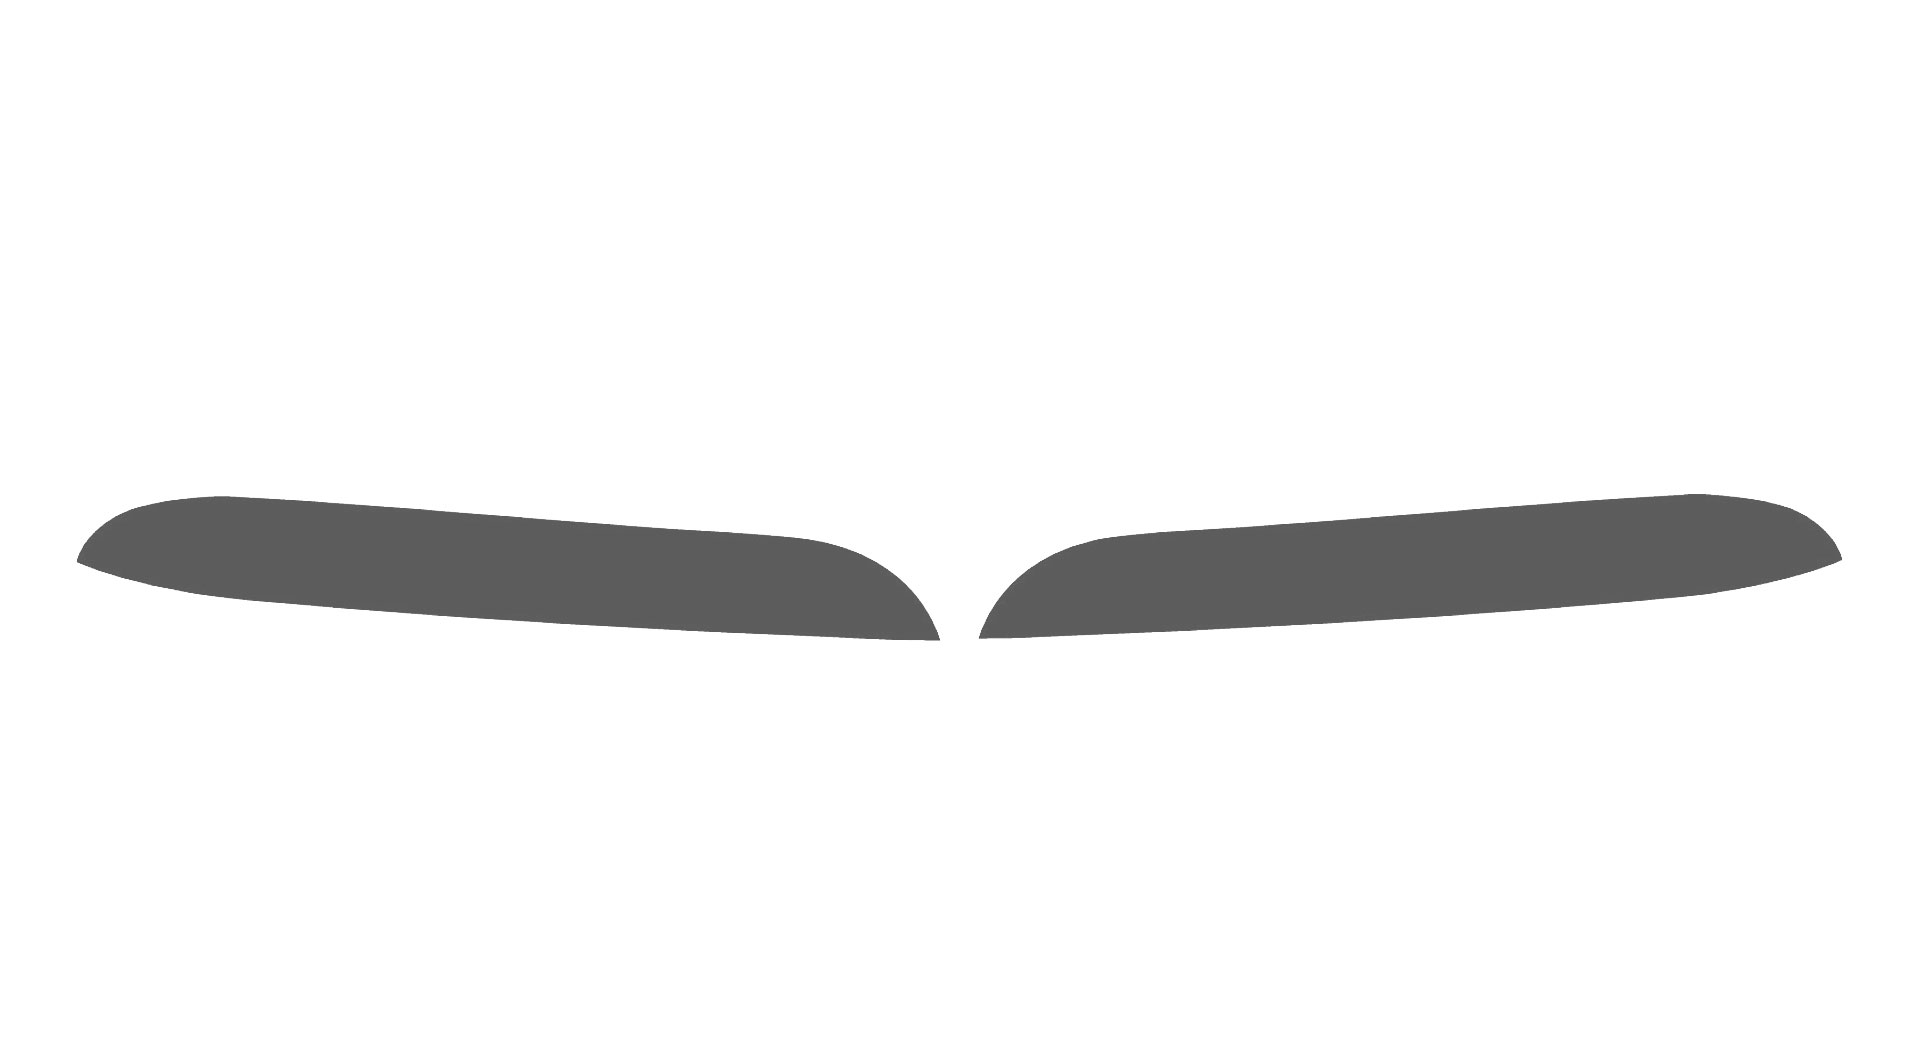 Mercedes-Benz C-Class 2012-2014 Fog Light Protection Covers Diagram